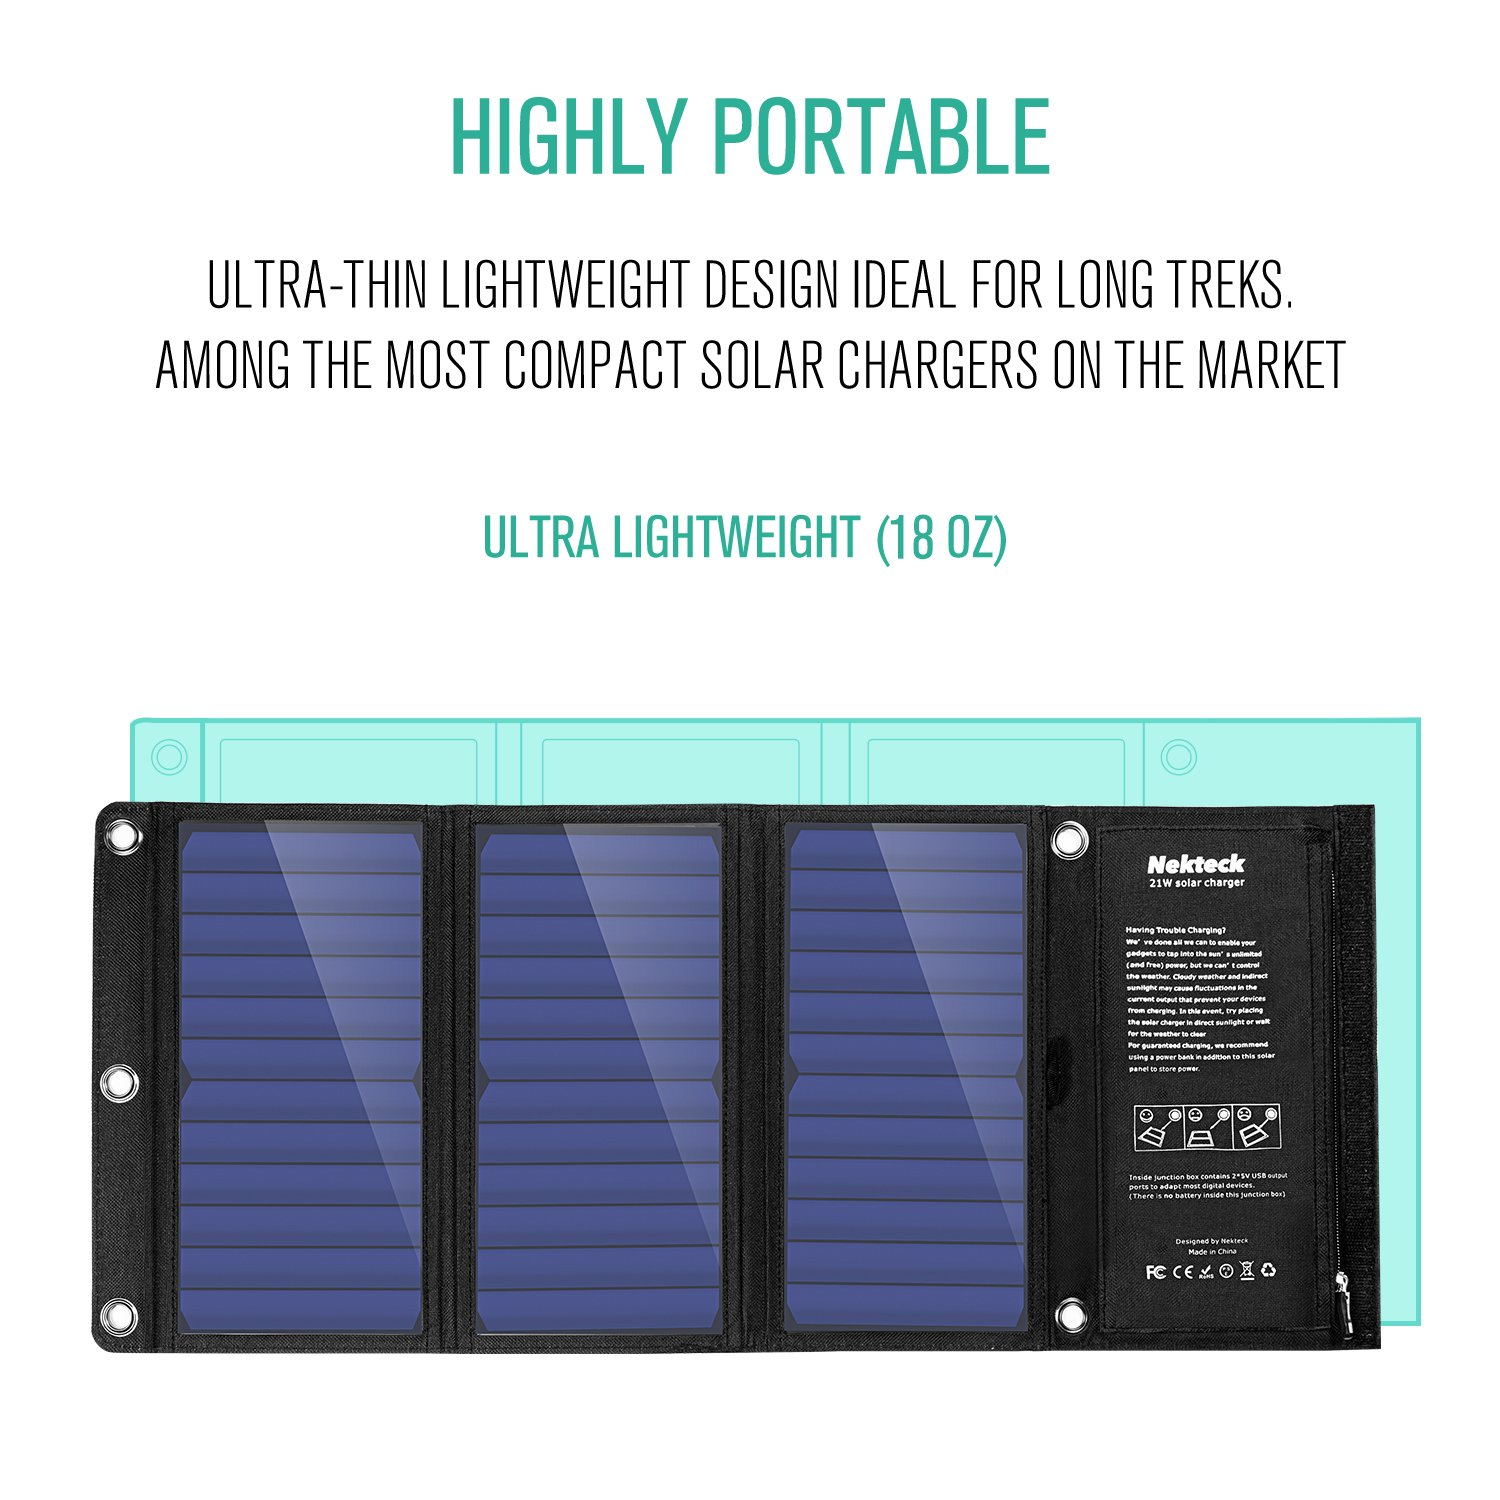 Nekteck 21W Solar Charger with 2-Port USB Charger Build with High Efficiency Solar Panel Cell for iPhone 6s / 6 / Plus, SE, iPad, Galaxy S6/S7/ Edge/Plus, Nexus 5X/6P, Any USB Devices, and More by Nekteck (Image #3)